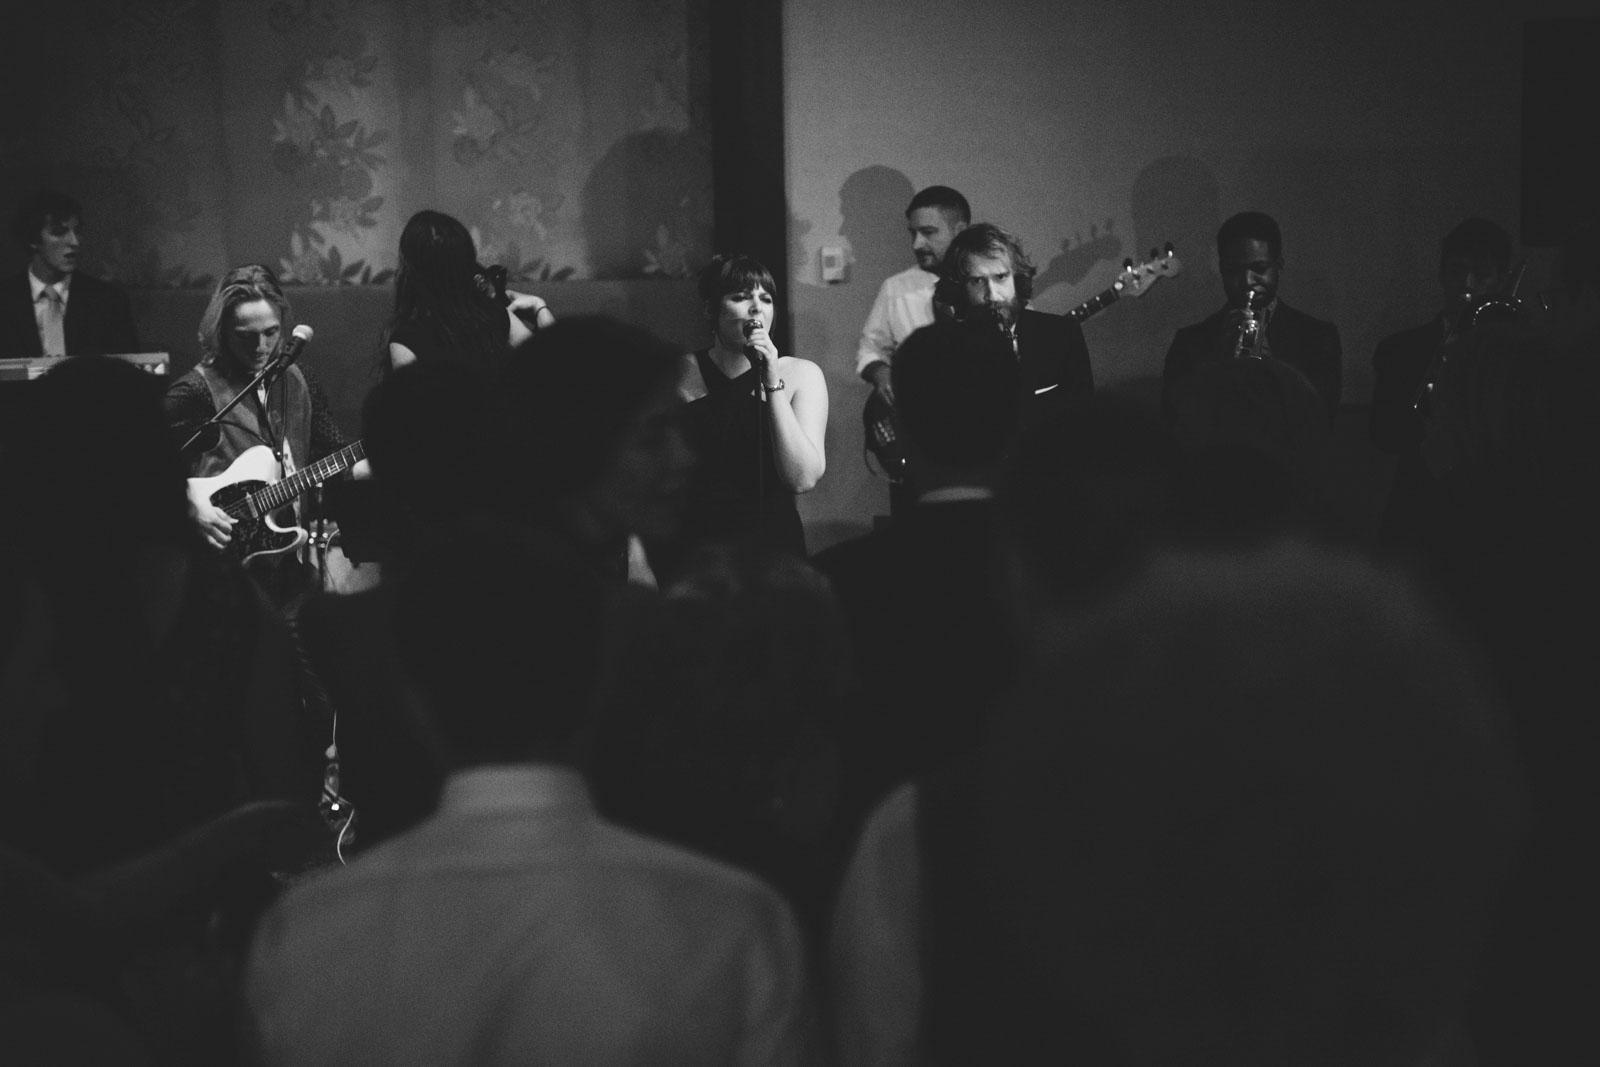 Dramatic black and white shot of maid of honor surprising bride by singing during reception